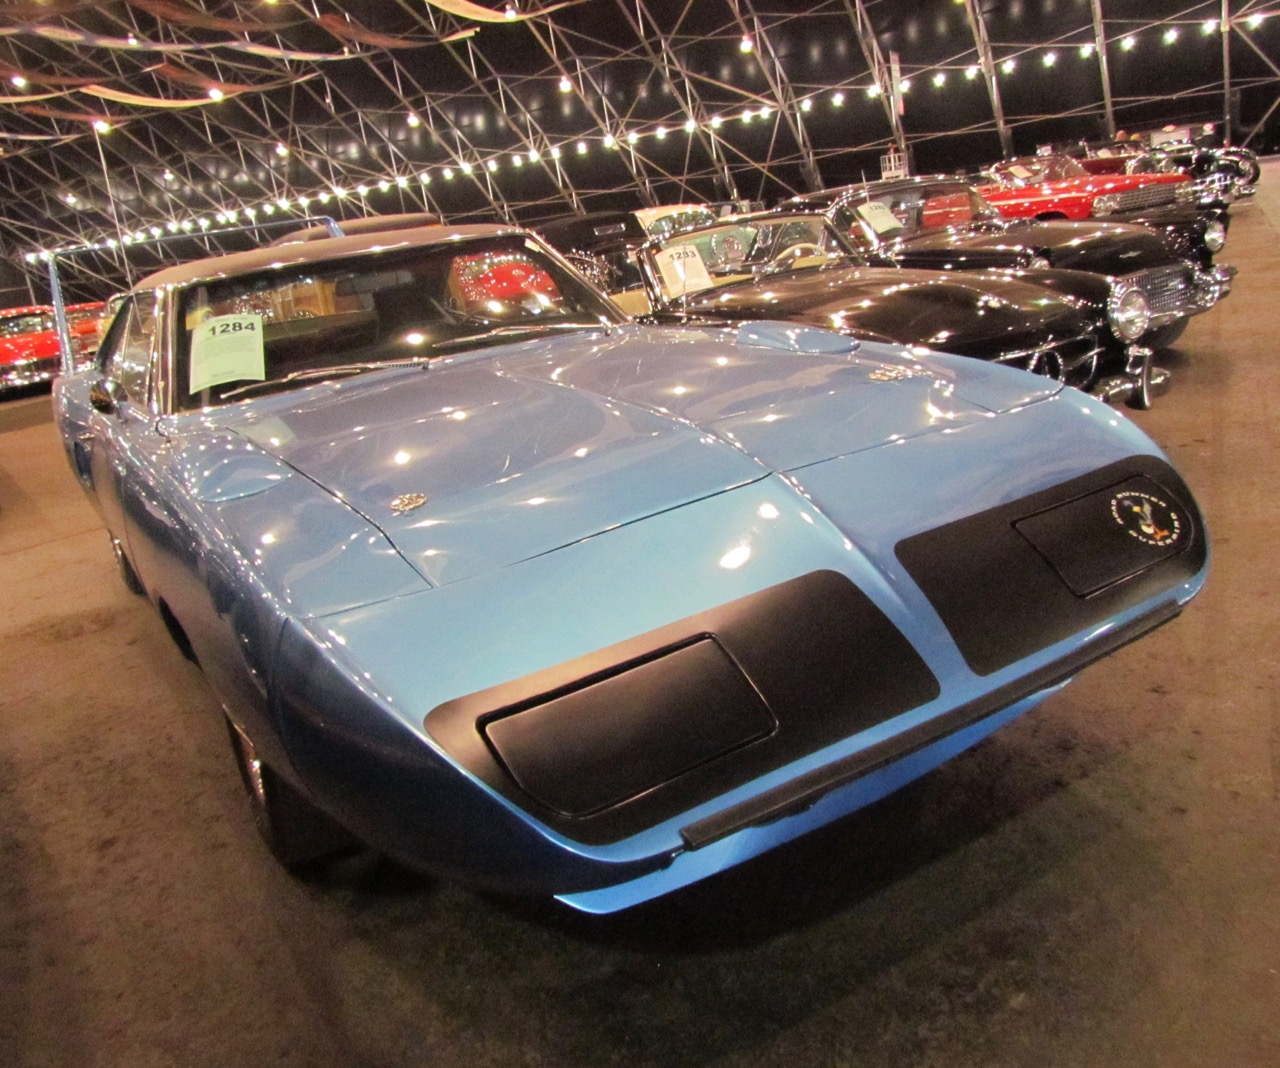 Live, From Scottsdale, It's Barrett-Jackson: Auction